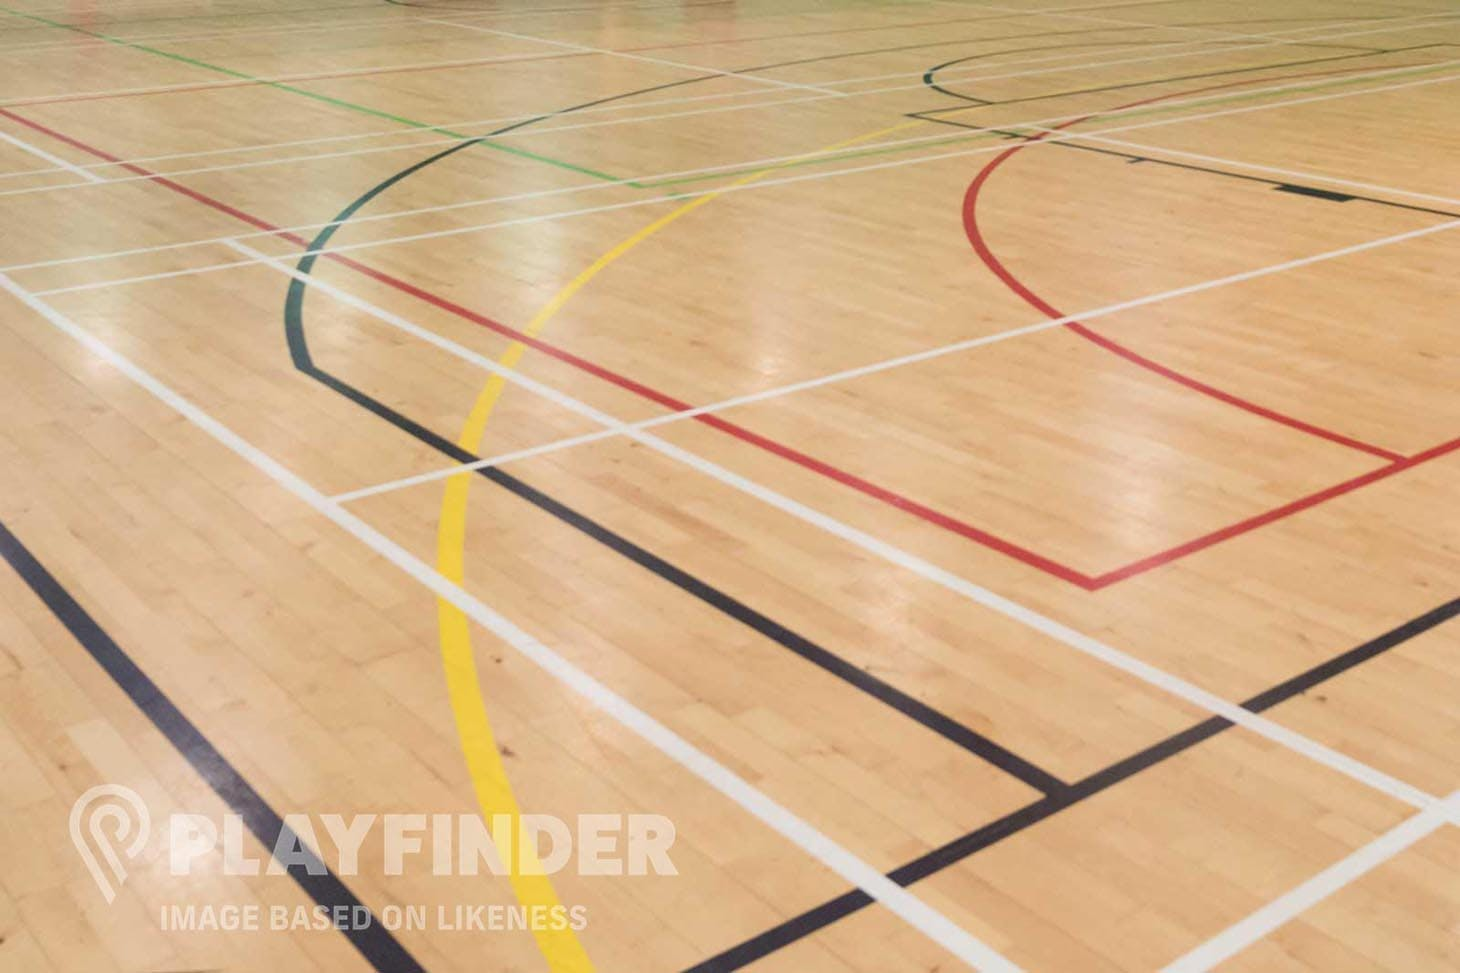 Marcus Lipton Community Enterprise Court | Sports hall volleyball court